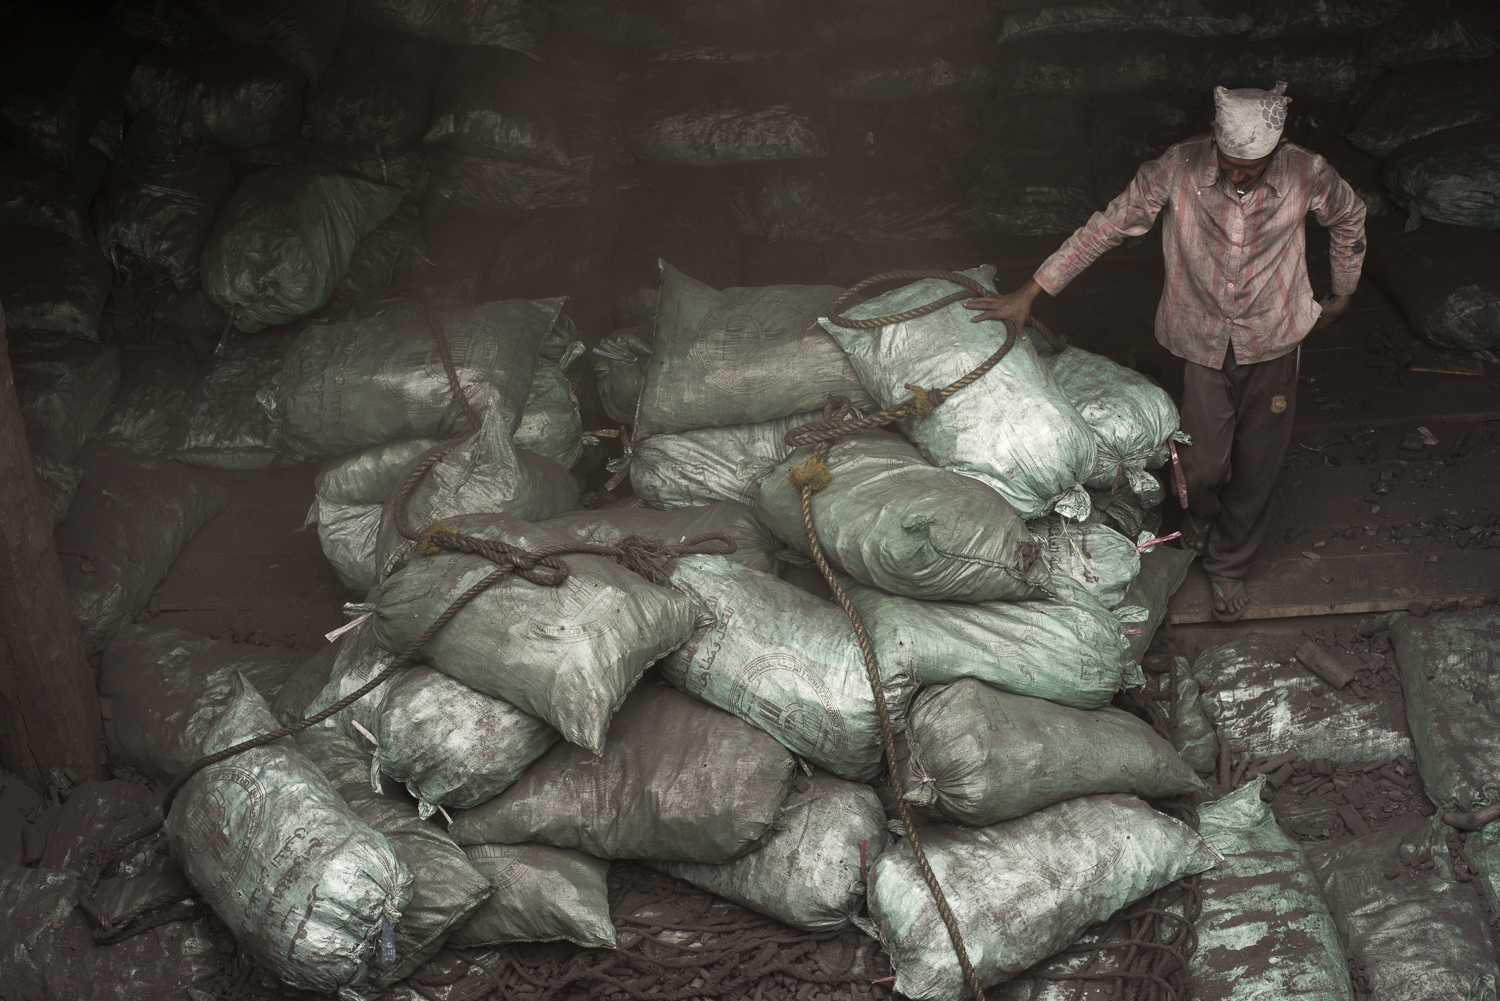 sacks-charcoal-workers-uae-jo-kearney-photography-video-travel-photography.jpg